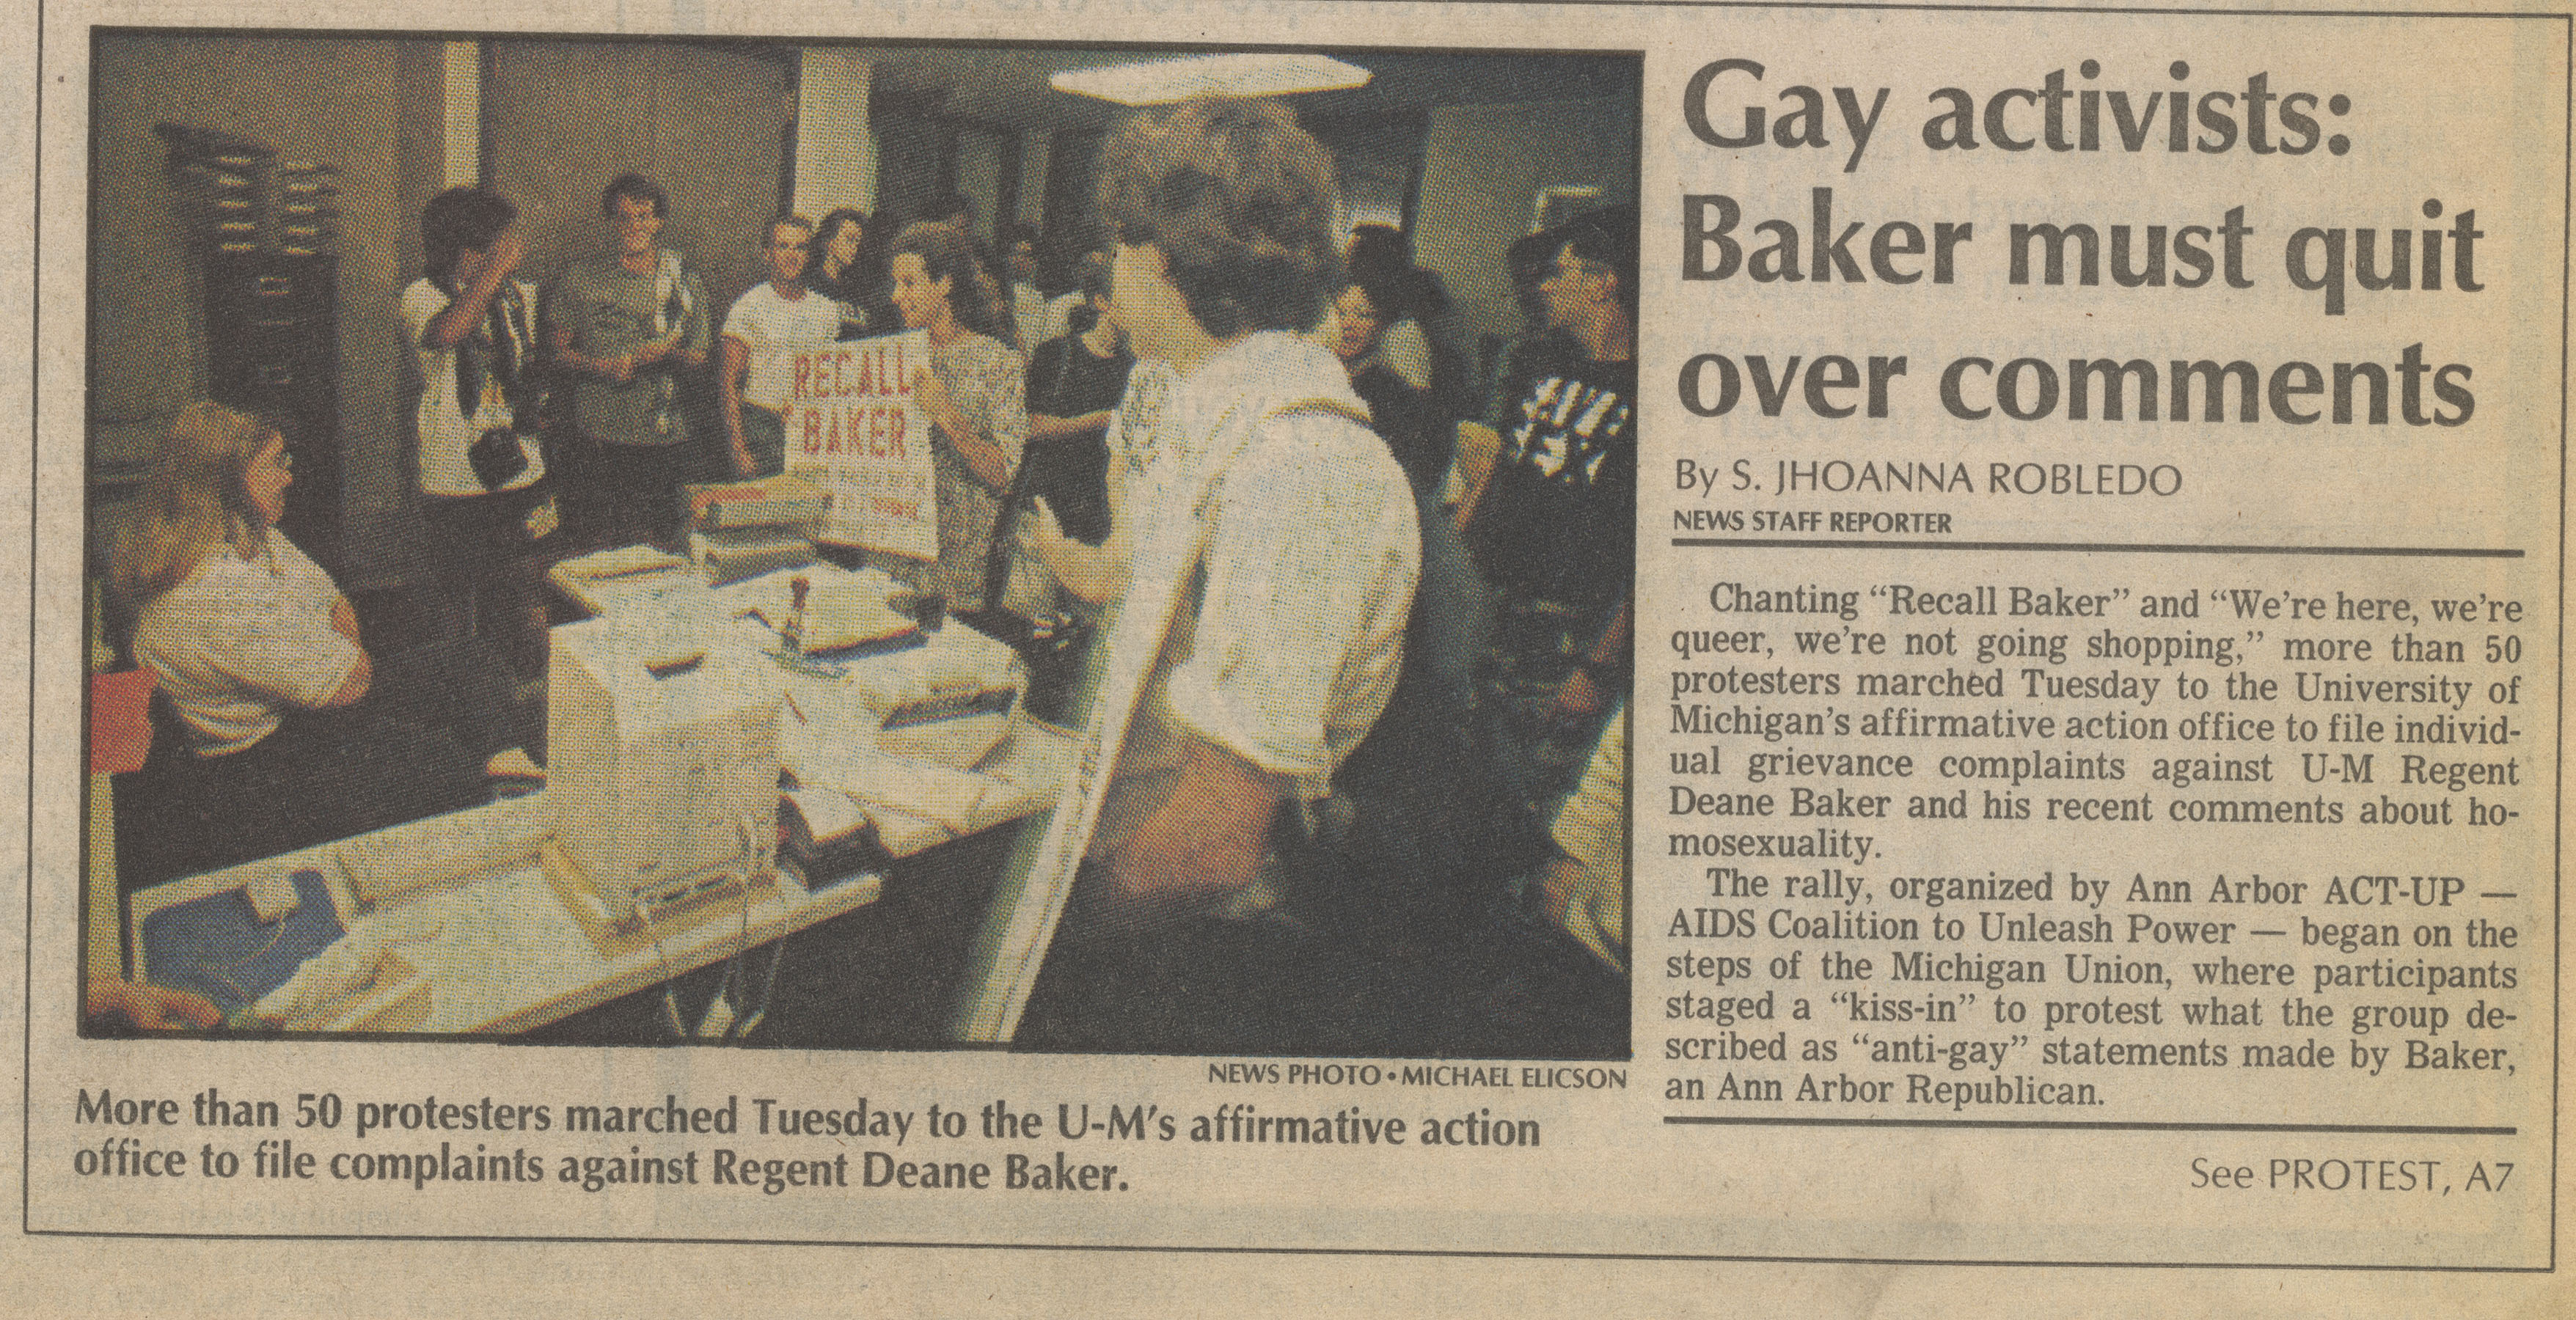 Gay activists: Baker must quit over comments image